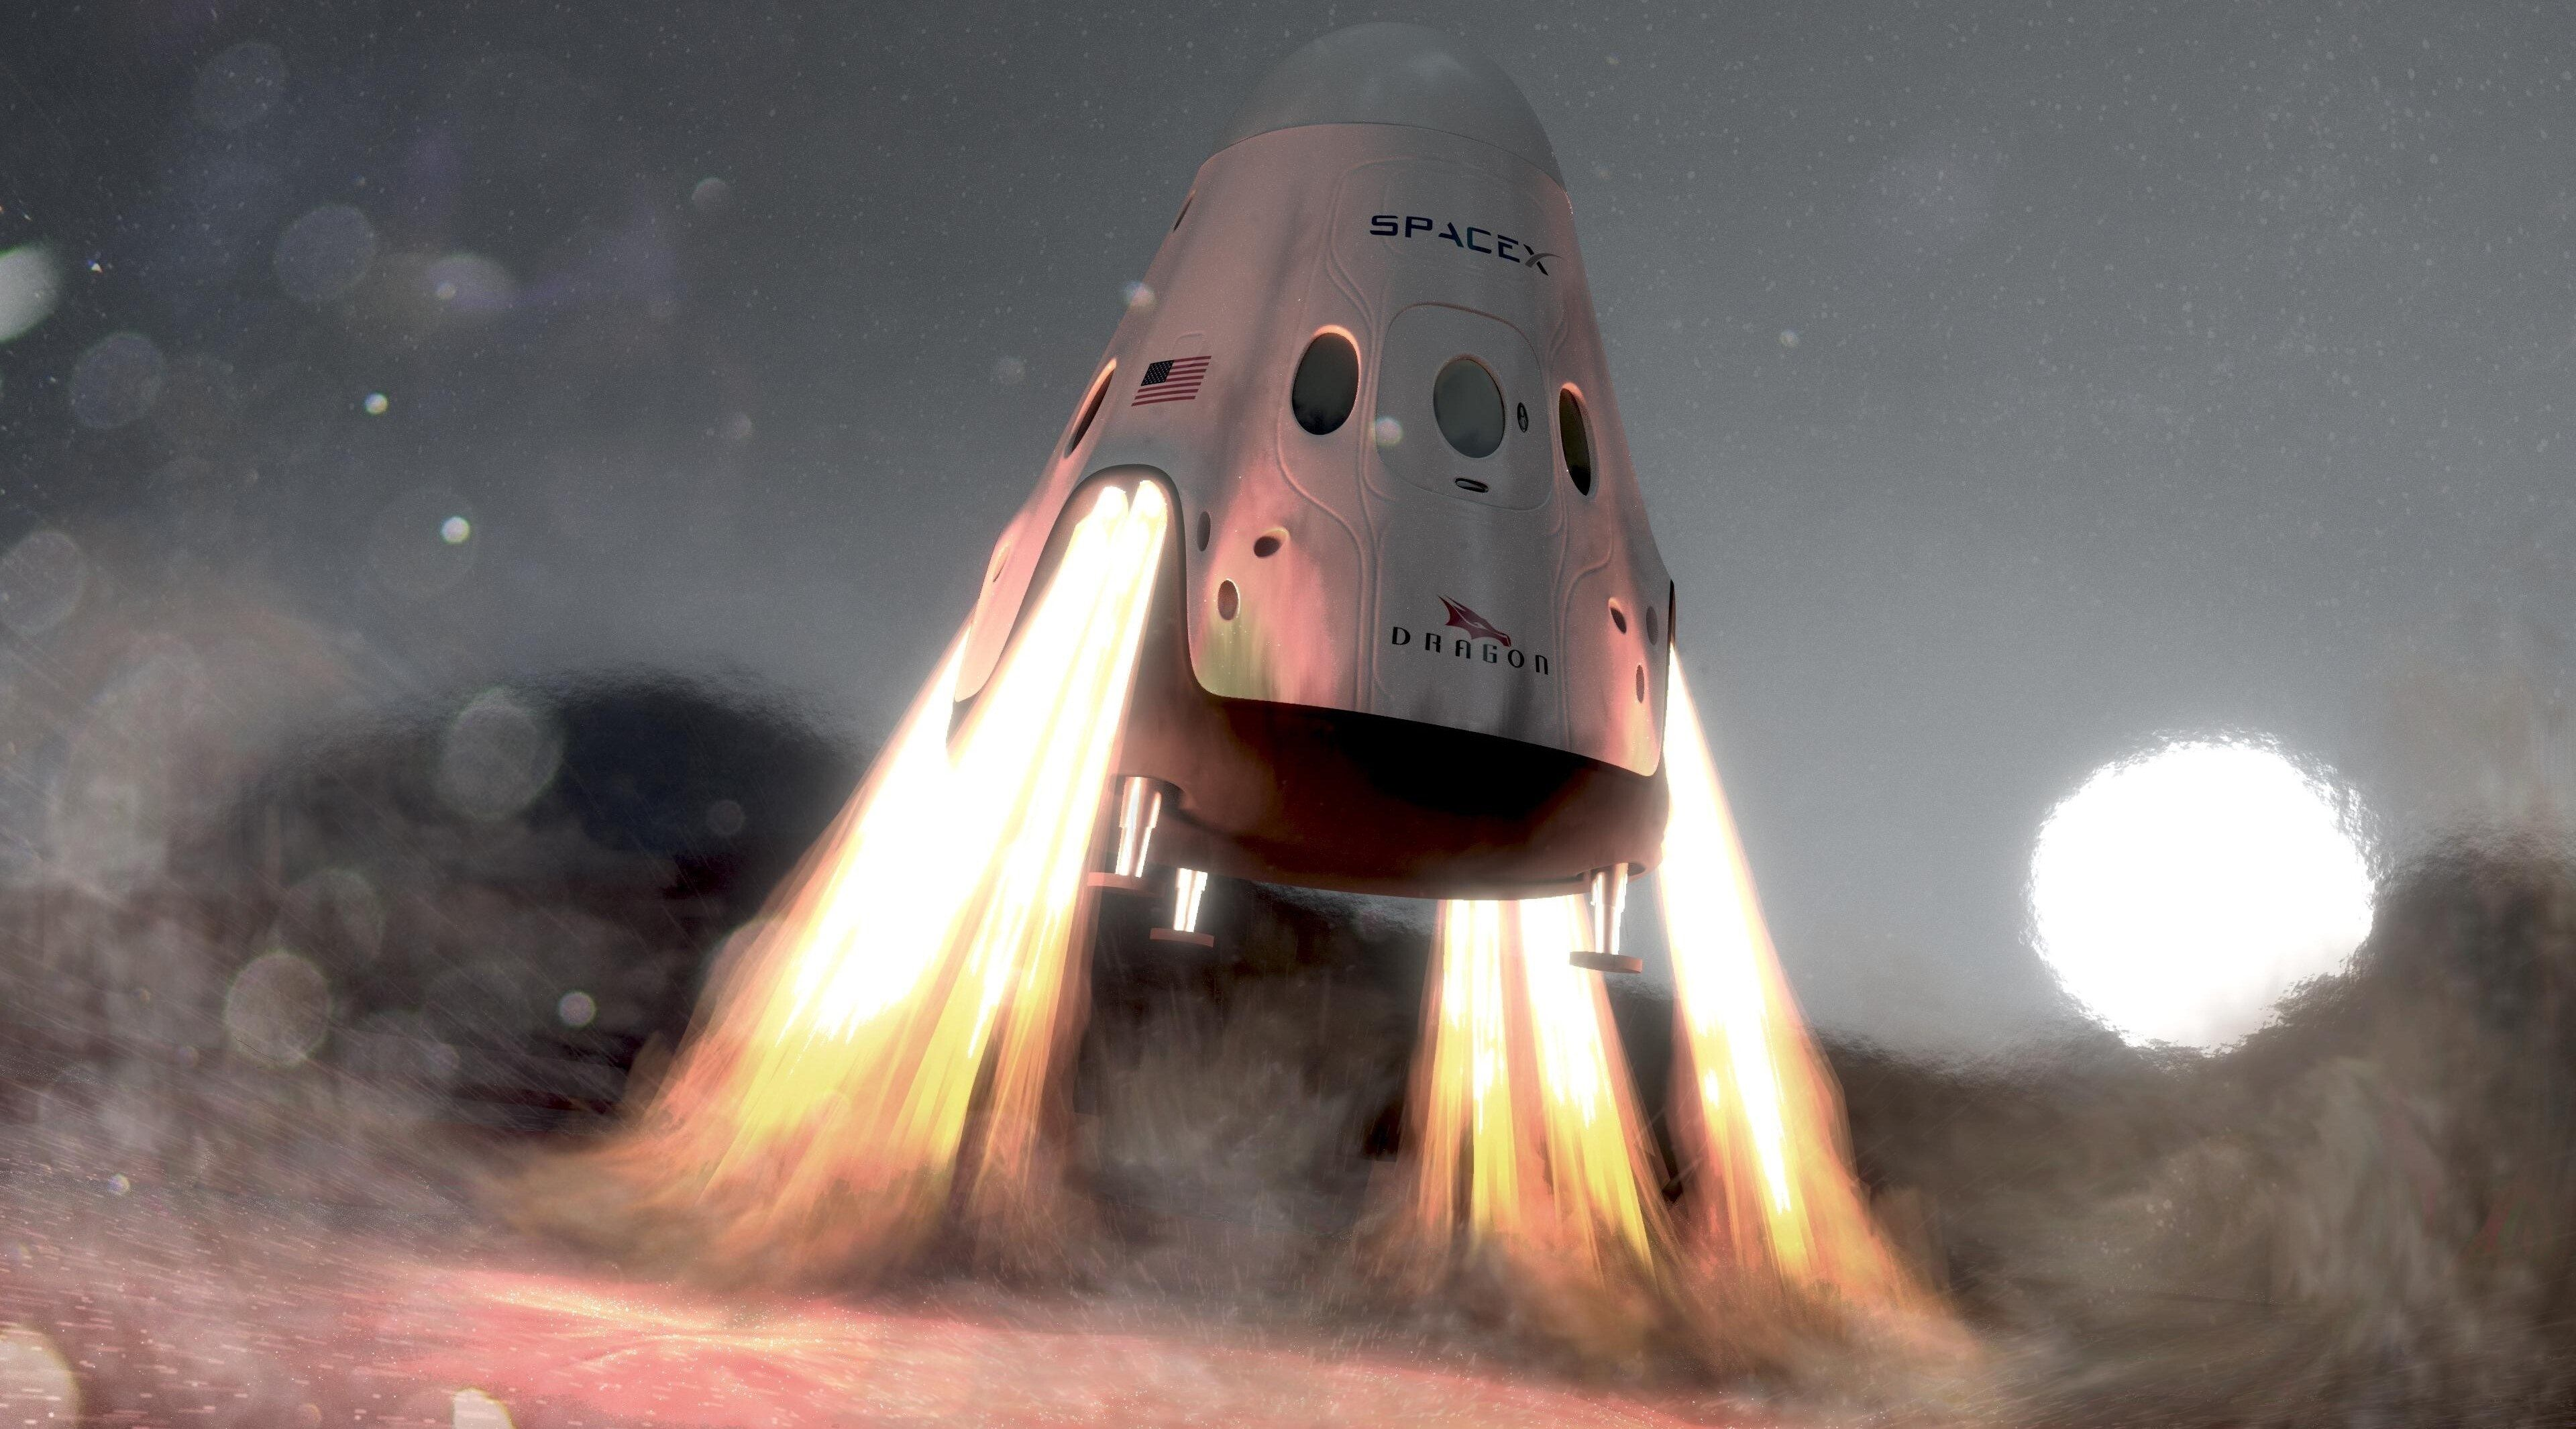 3840x2130 Spacex 4k Wallpaper Computer Spacex Space Shuttle Red Dragon